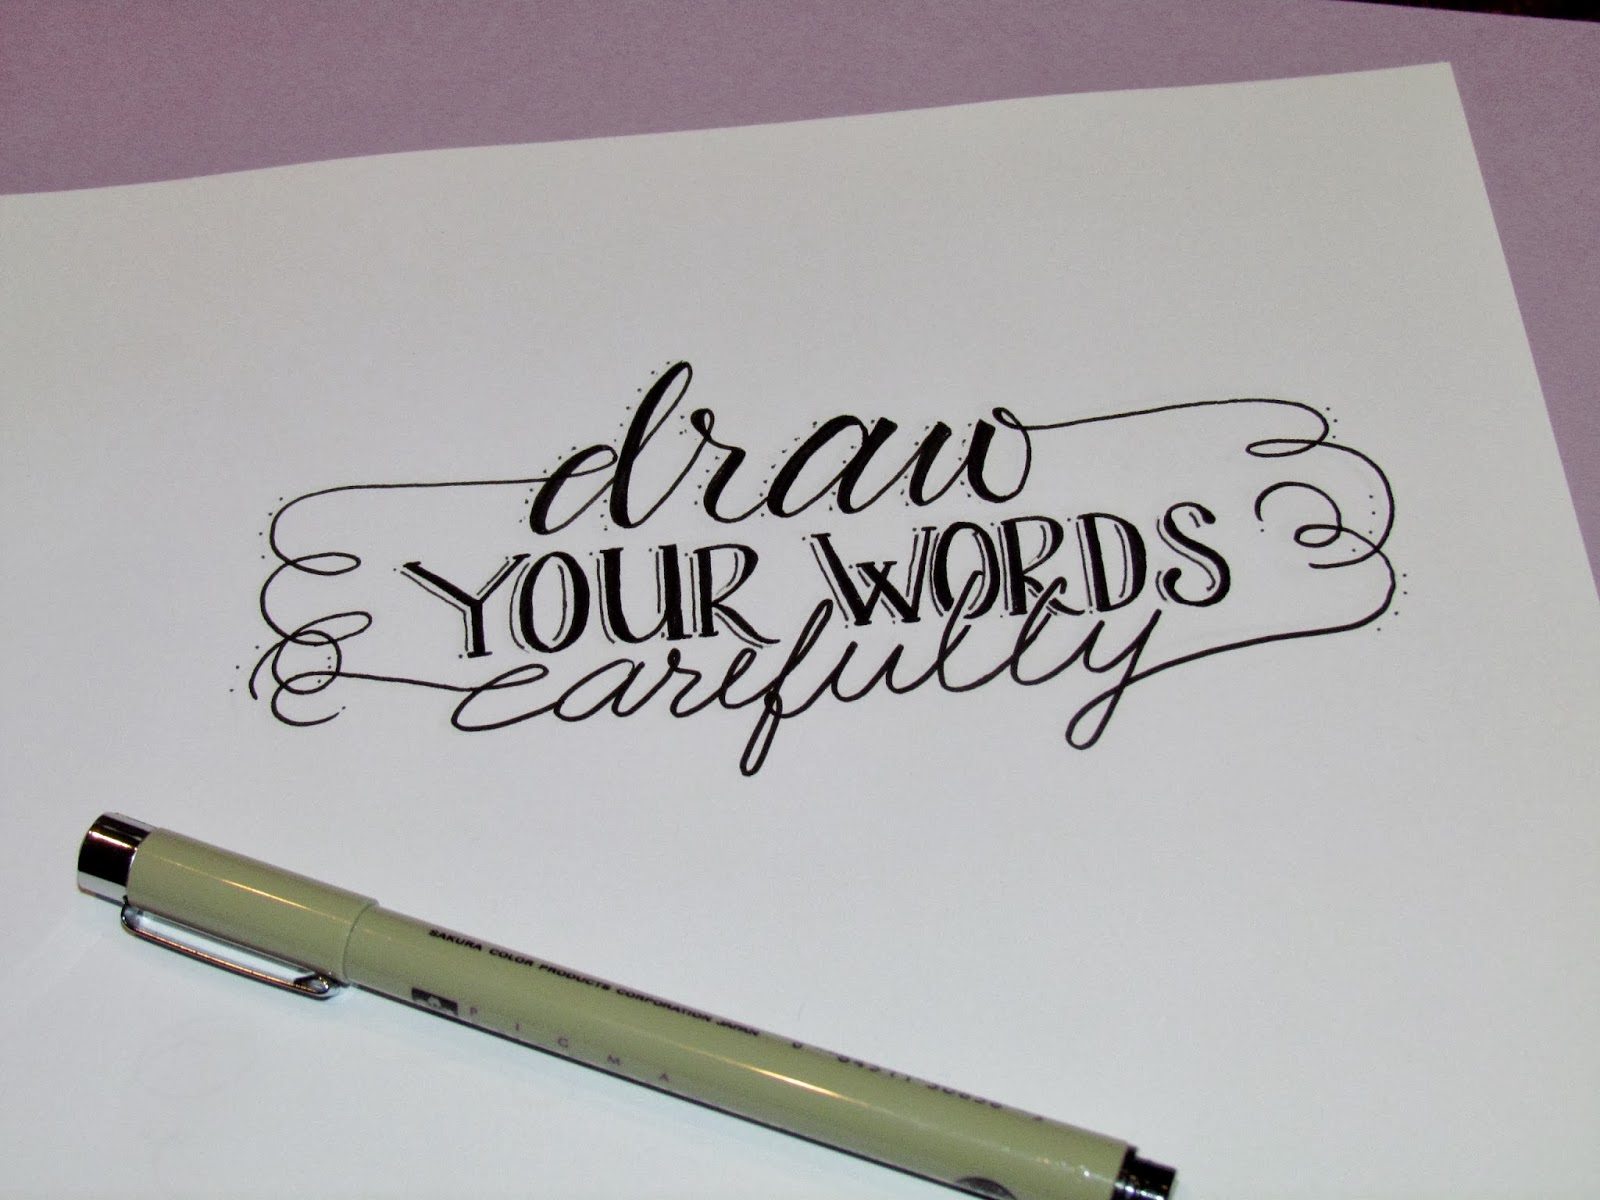 Lettering Lately-Draw your words carefully